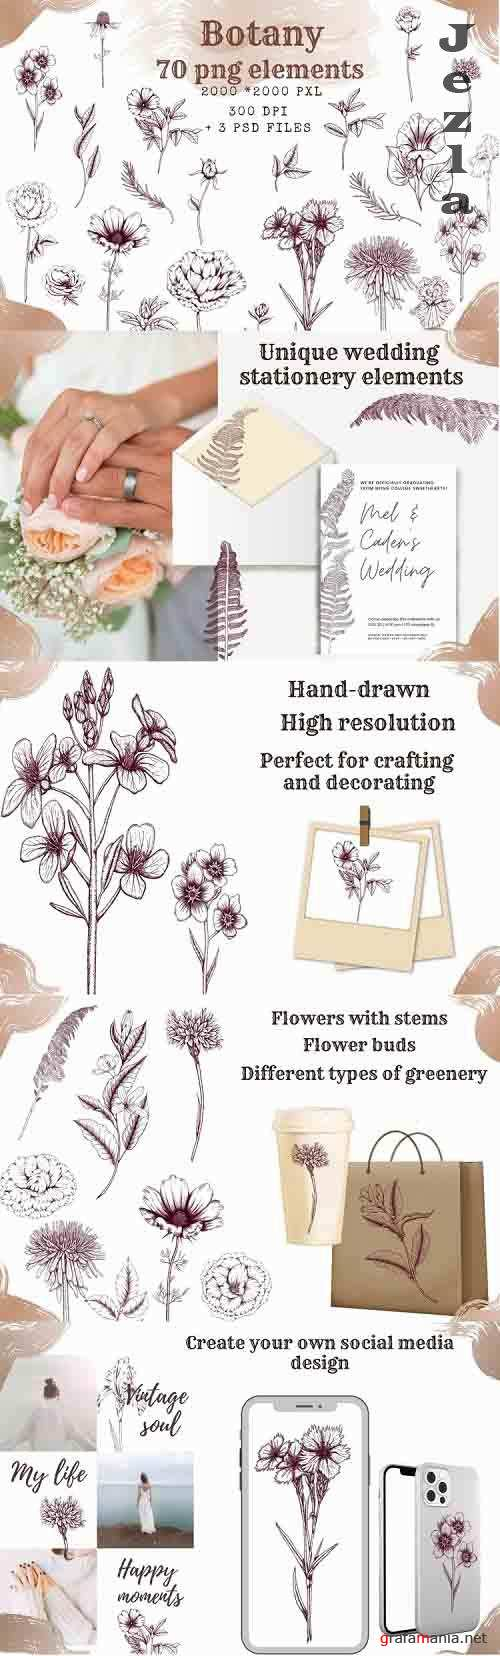 Botanical aesthetic clipart,hand drawn floral design element - 1246269